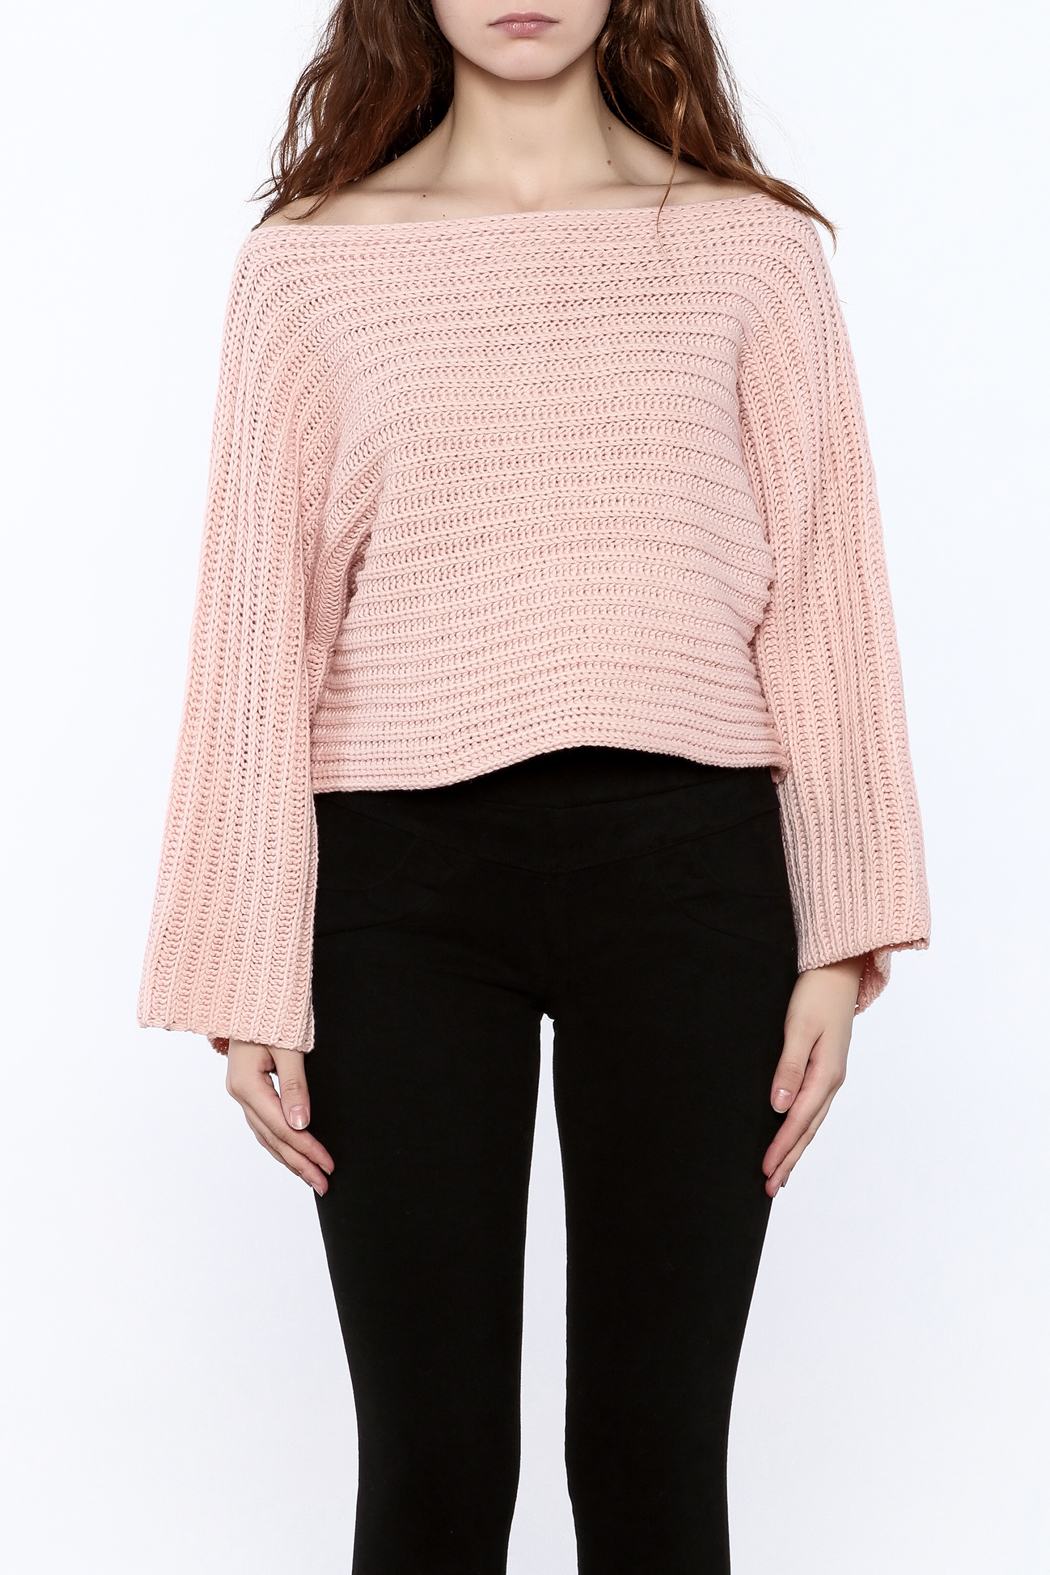 Pinkyotto Batwing Knit Cropped Sweater - Side Cropped Image